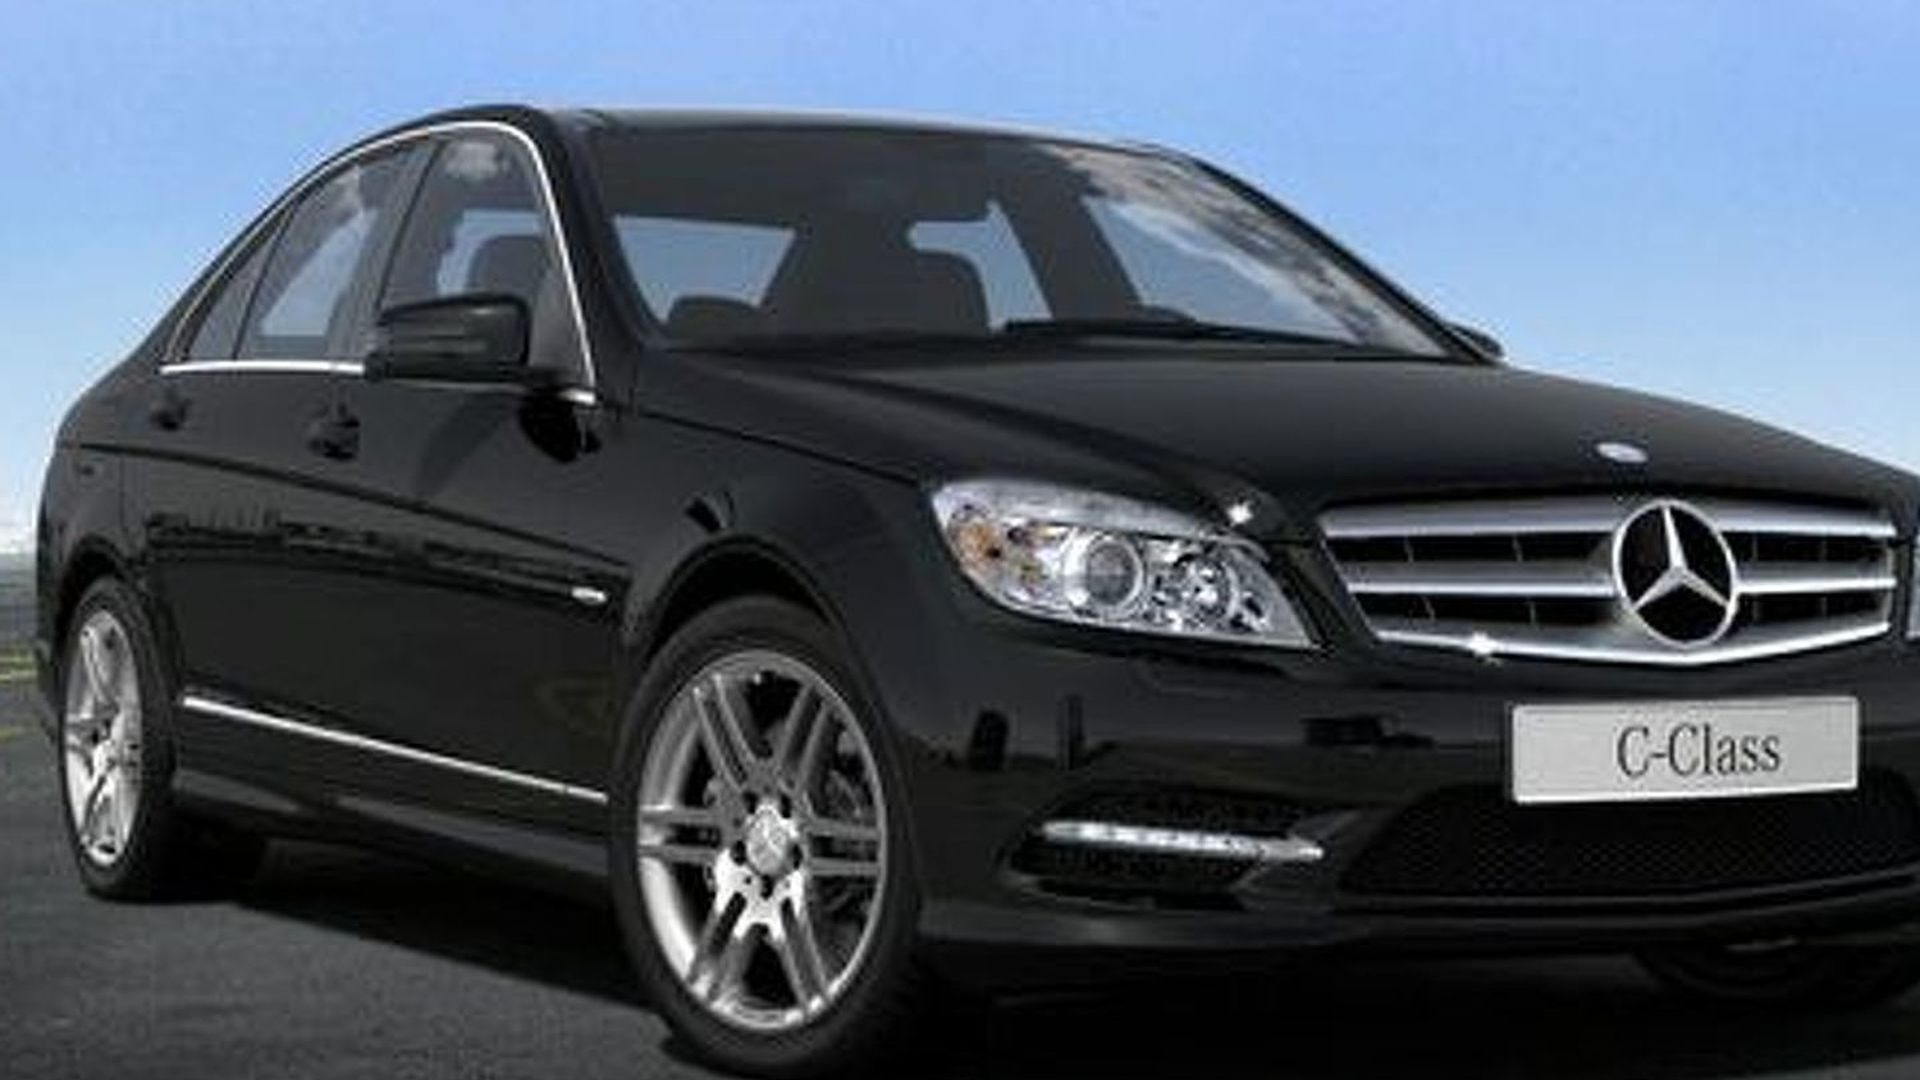 Mercedes C-Class Facelift Gets an Early Reveal